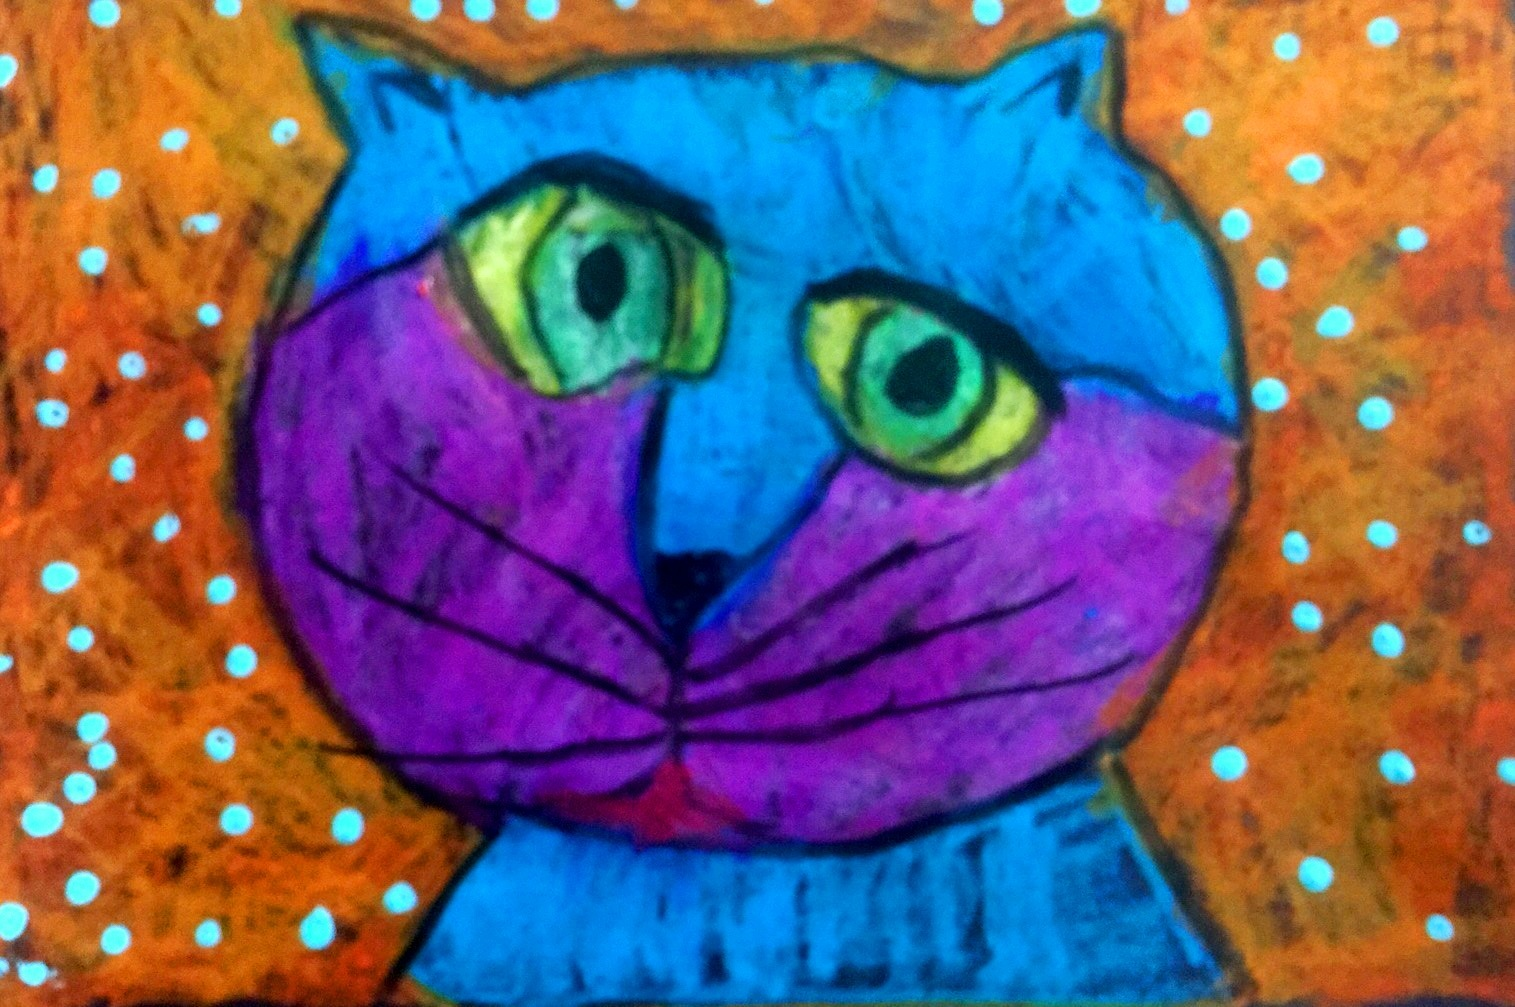 Kindergartener Savannah Oglesby's art